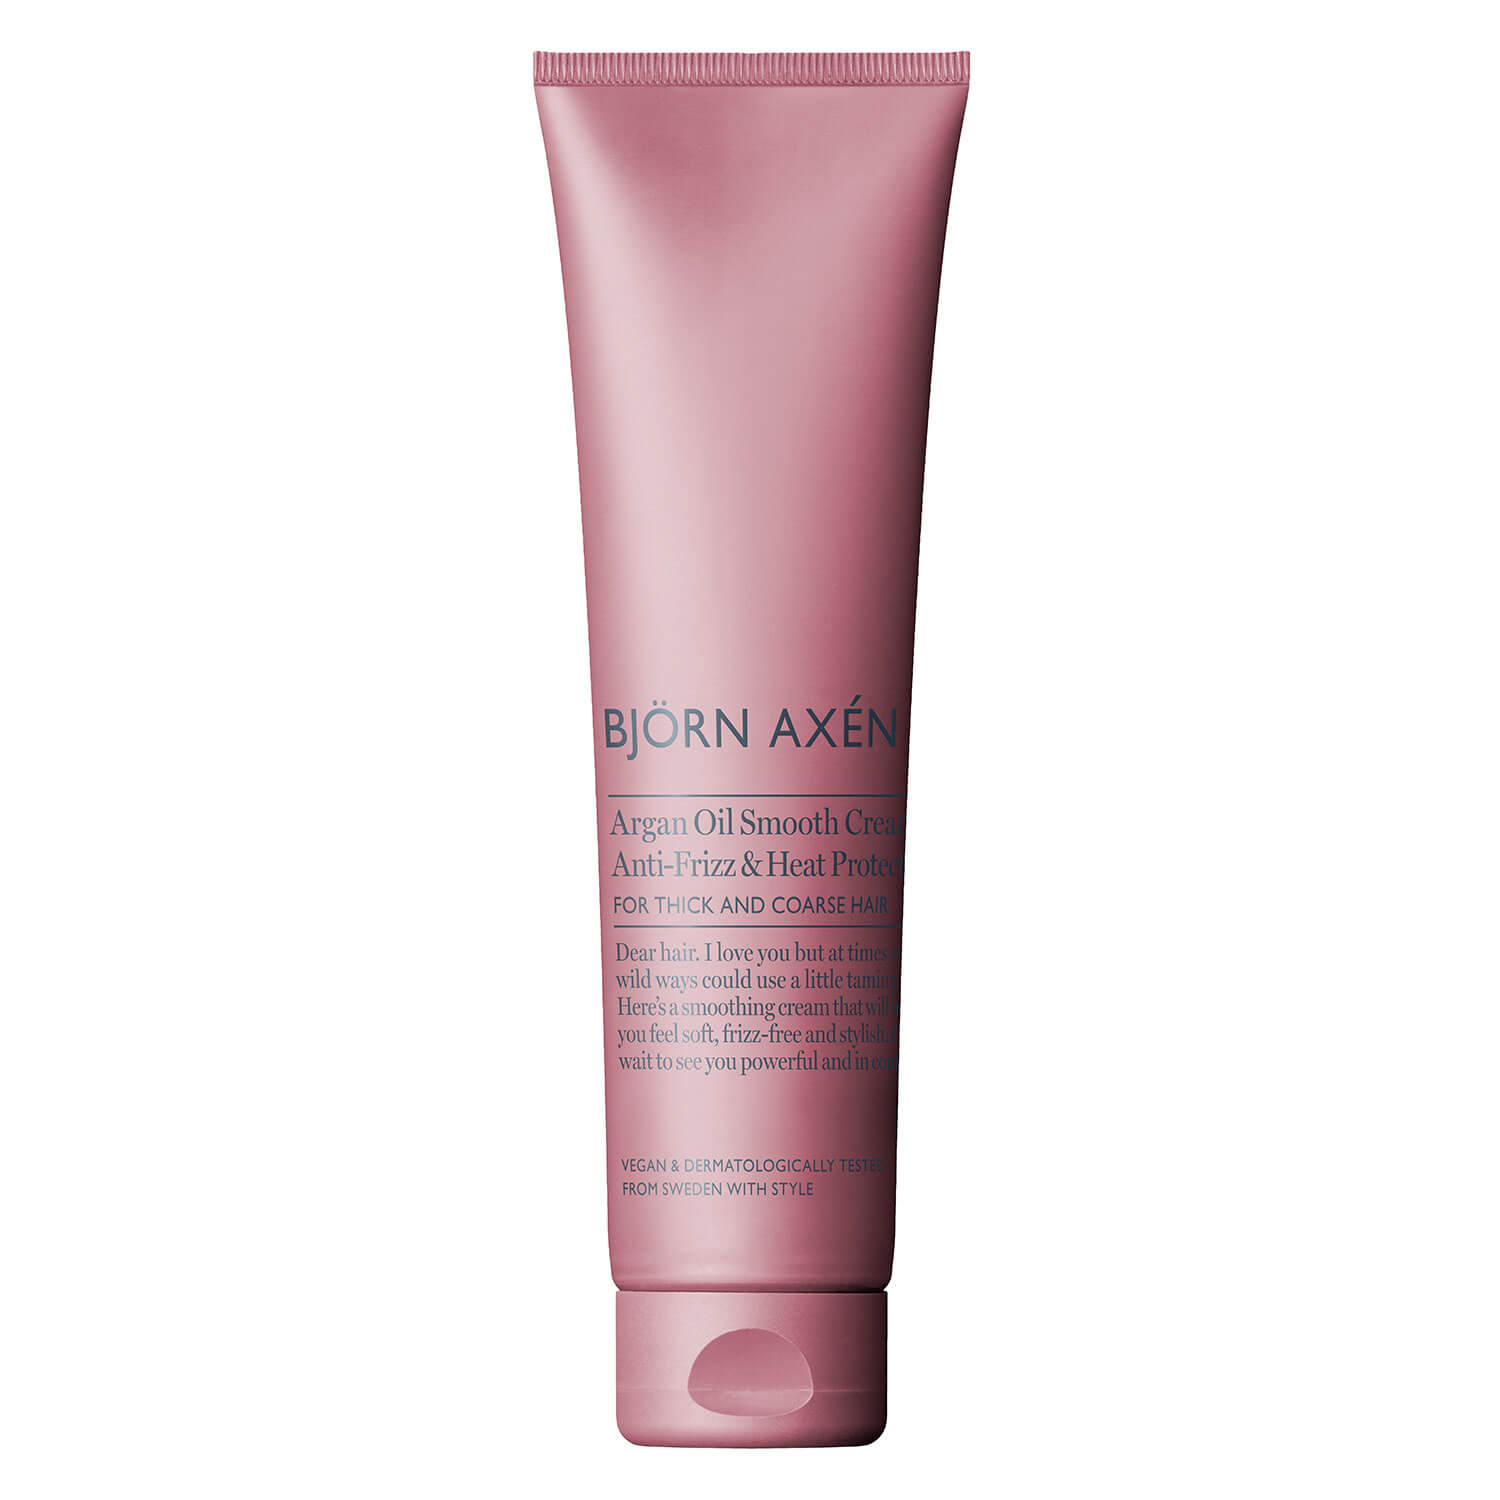 Björn Axén - Argan Oil Smooth Cream